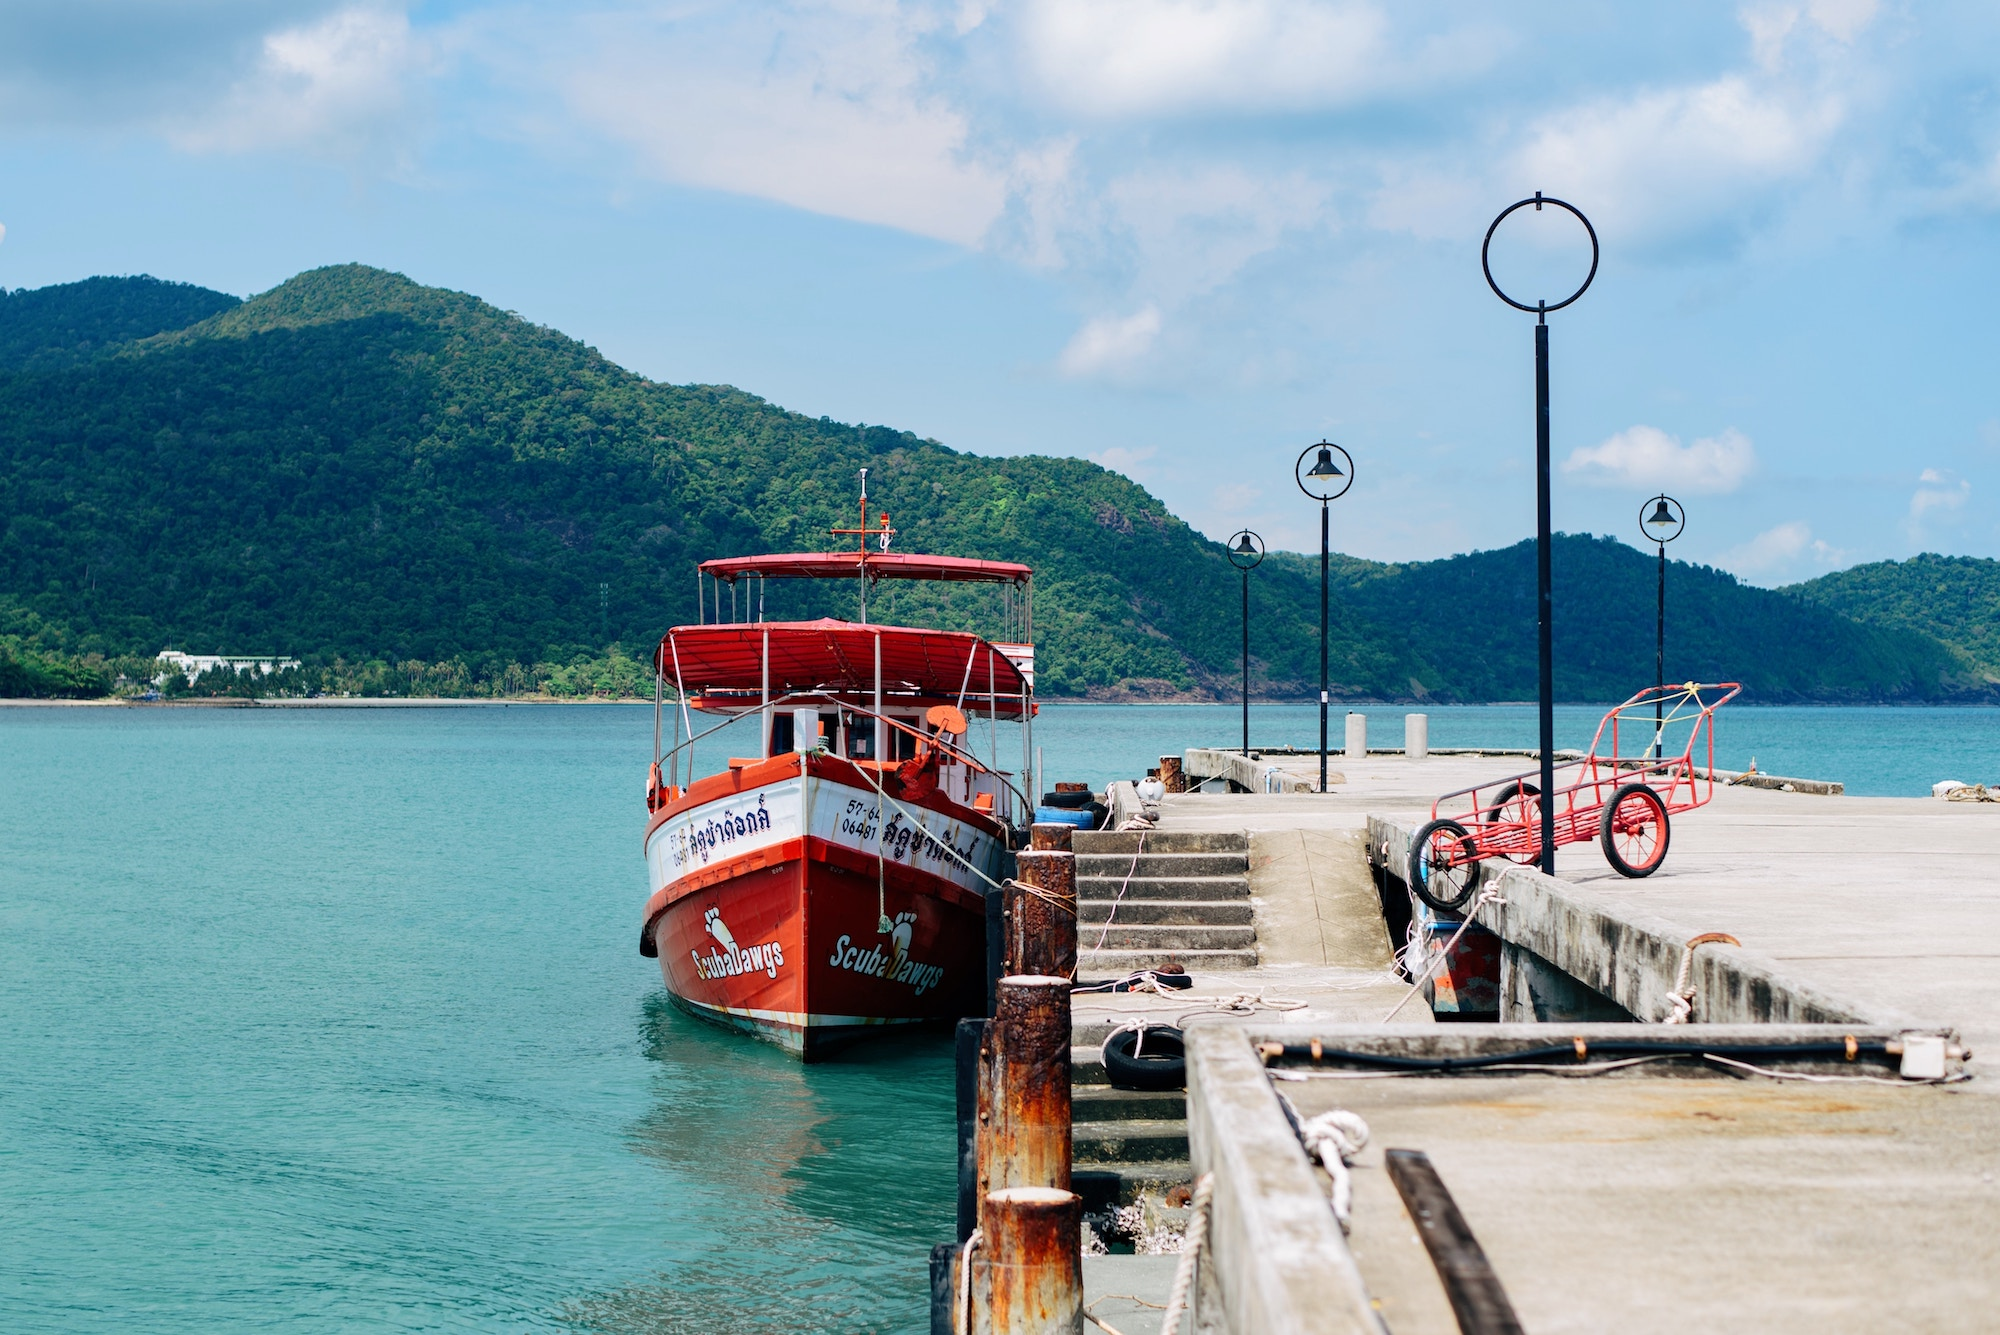 A boat docked on a jetty in Thailand